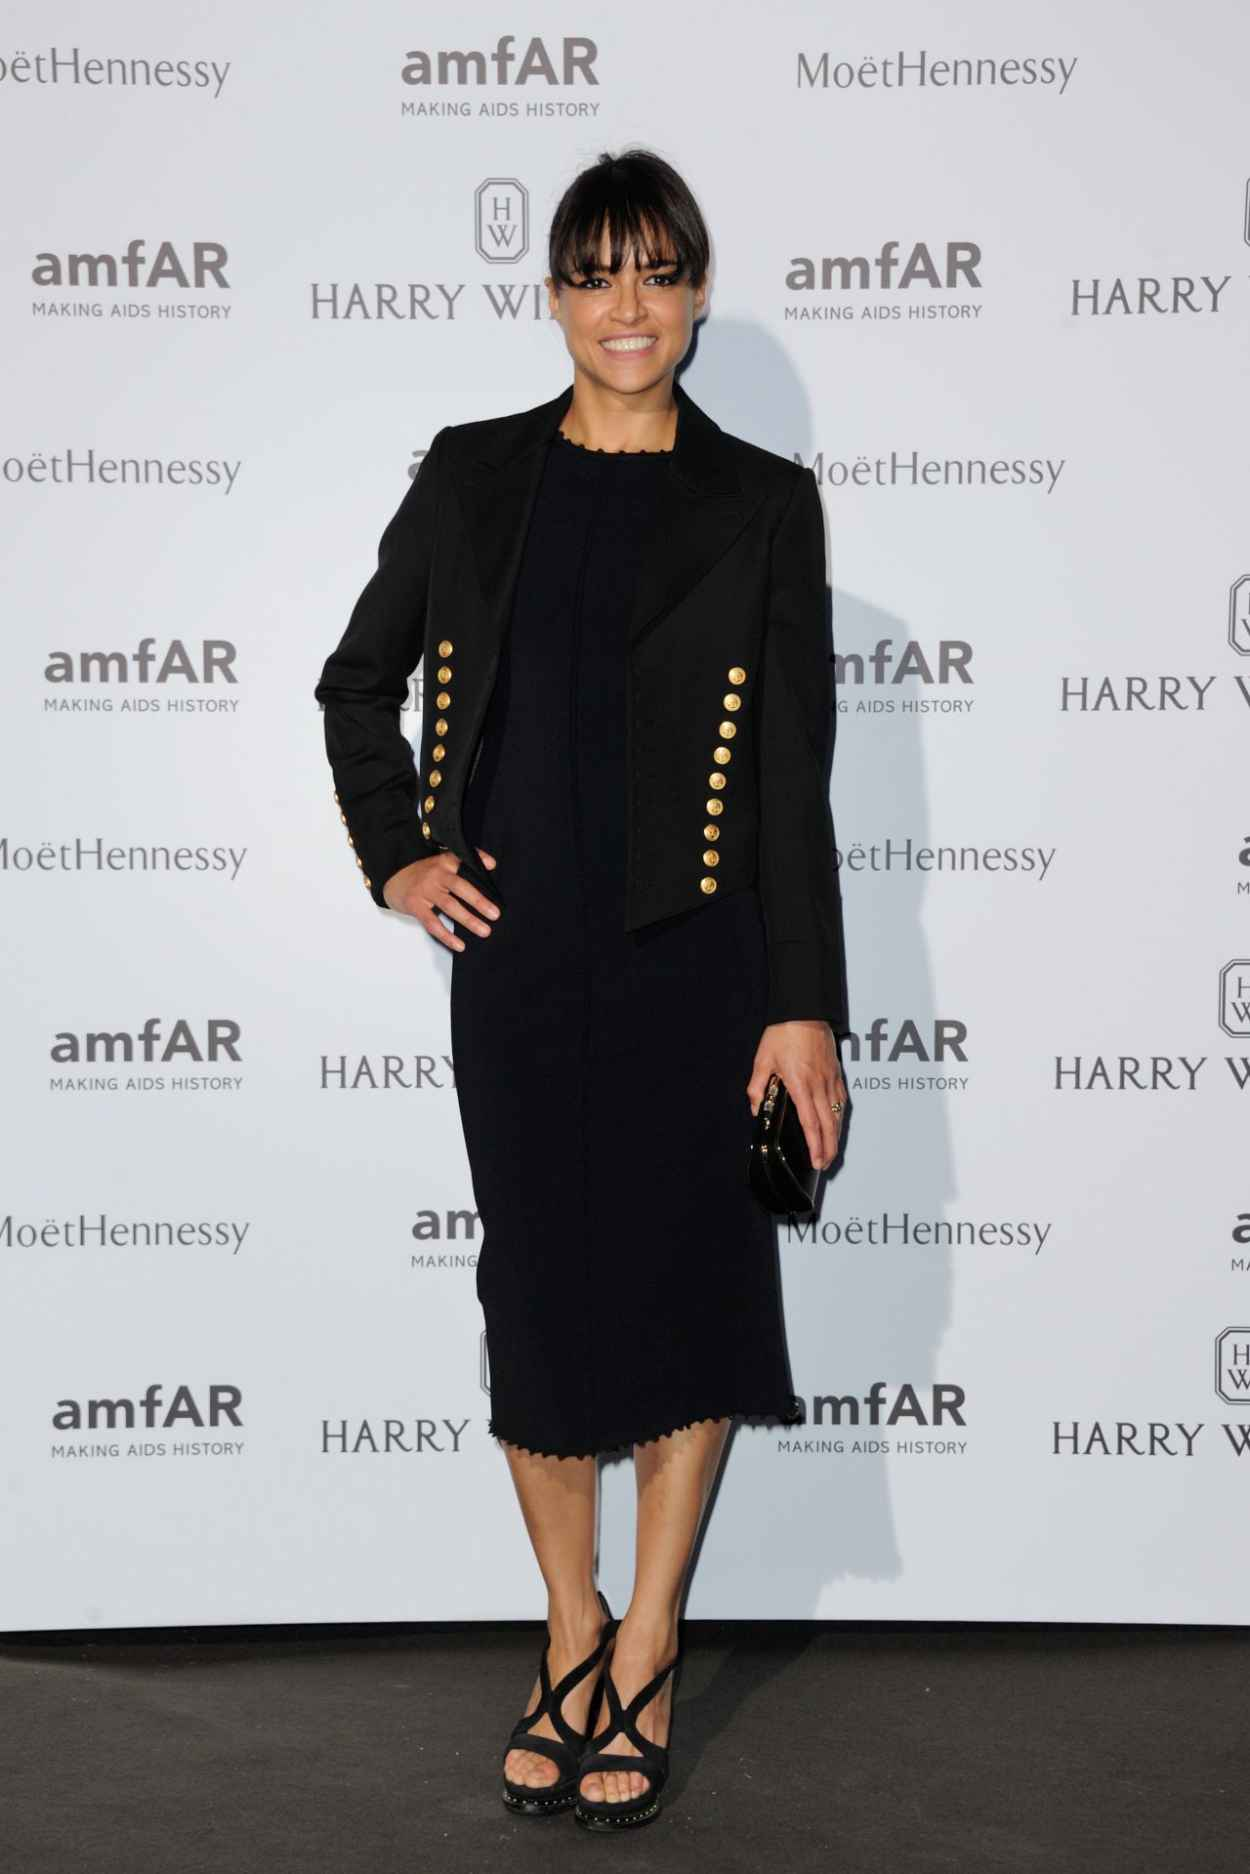 Michelle Rodriguez on Red Carpet - amfAR Dinner in Paris, July 2015-3